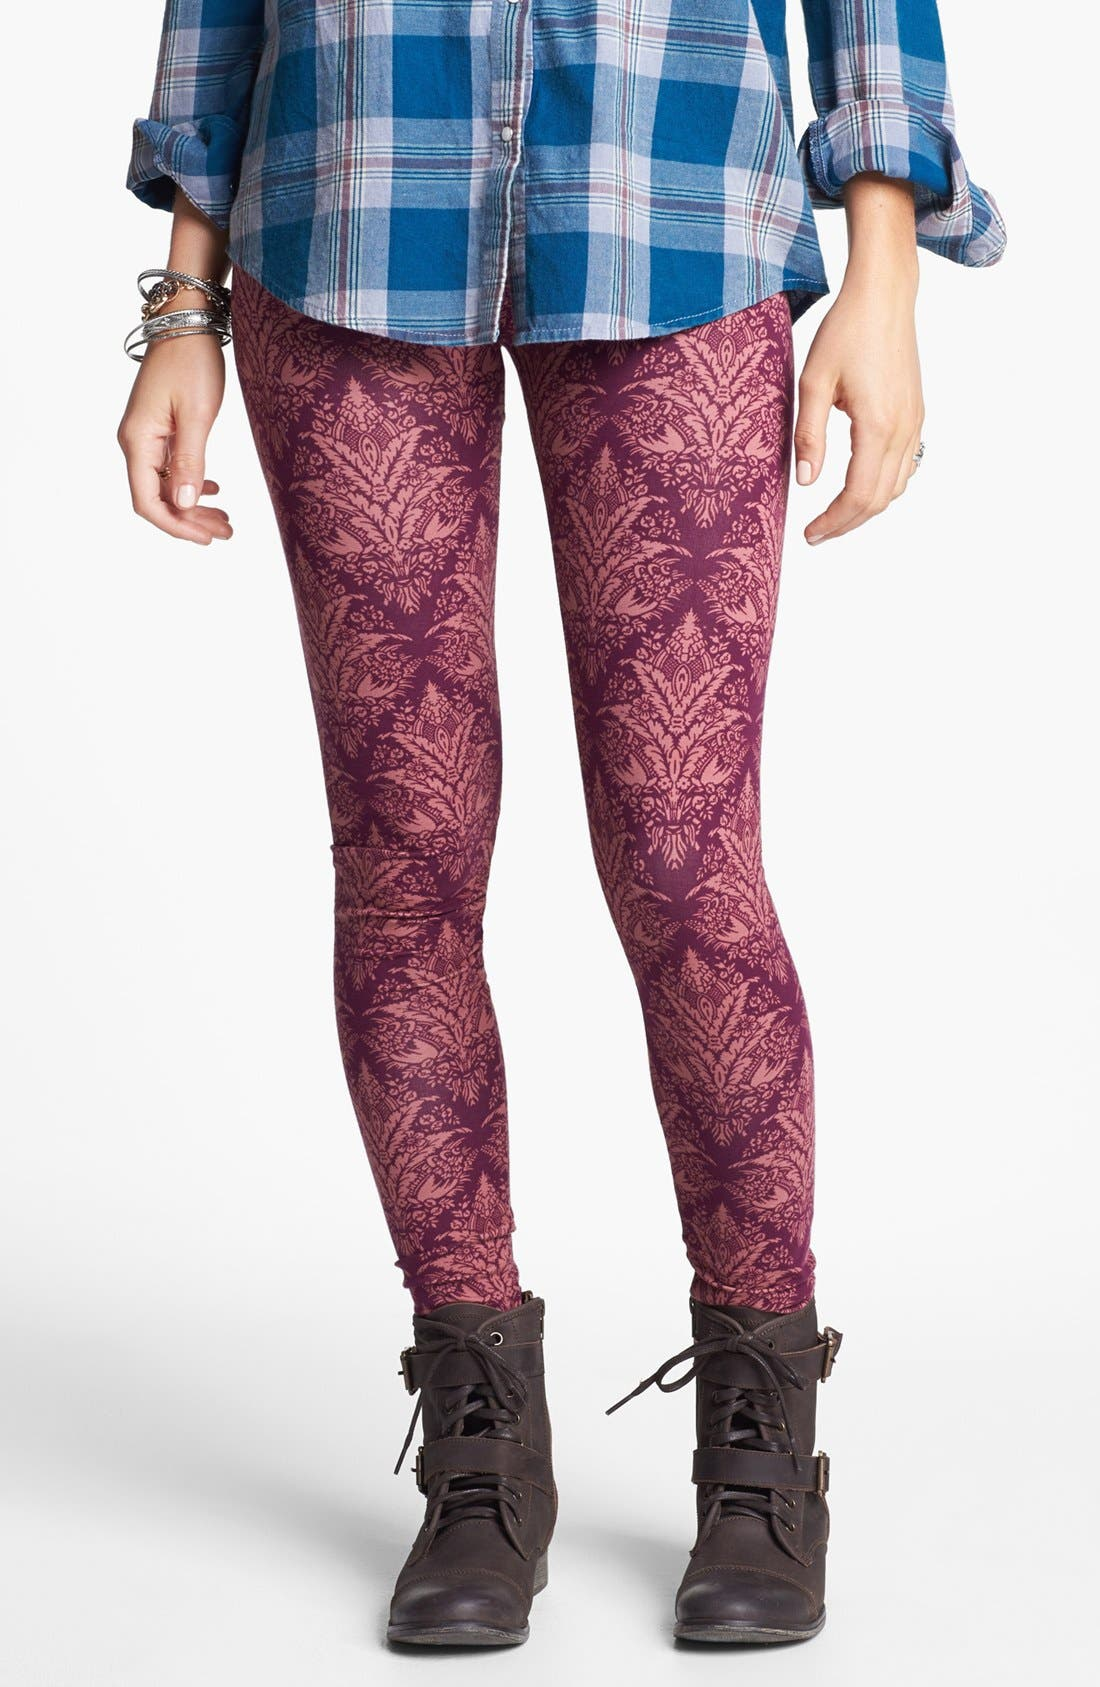 Main Image - Threads for Thought Damask Print High Waist Leggings (Juniors)